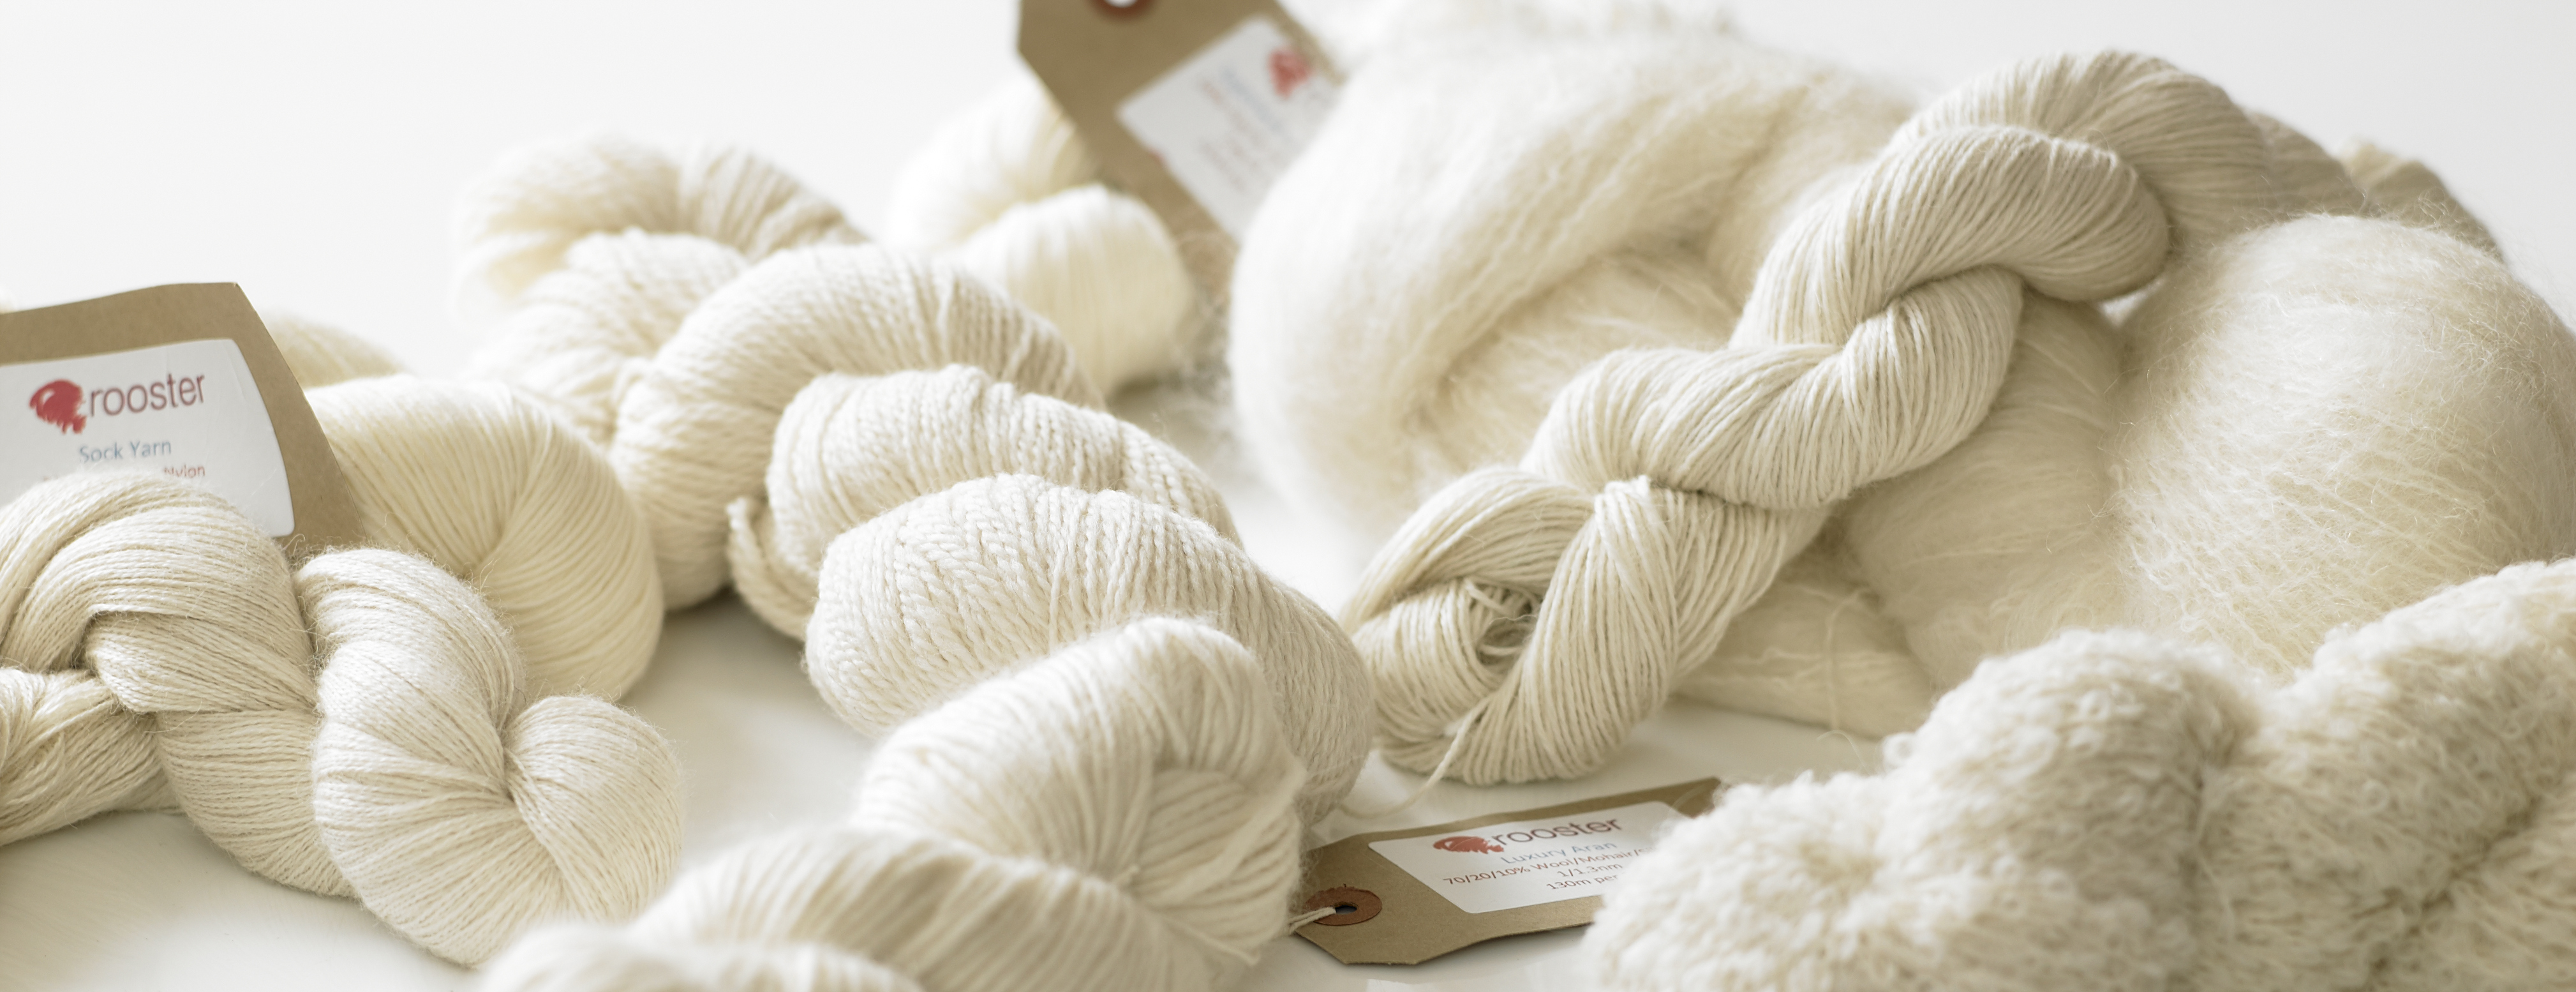 Rooster Undyed Yarns | Addi Needles | Manos Del Uruguay | UK